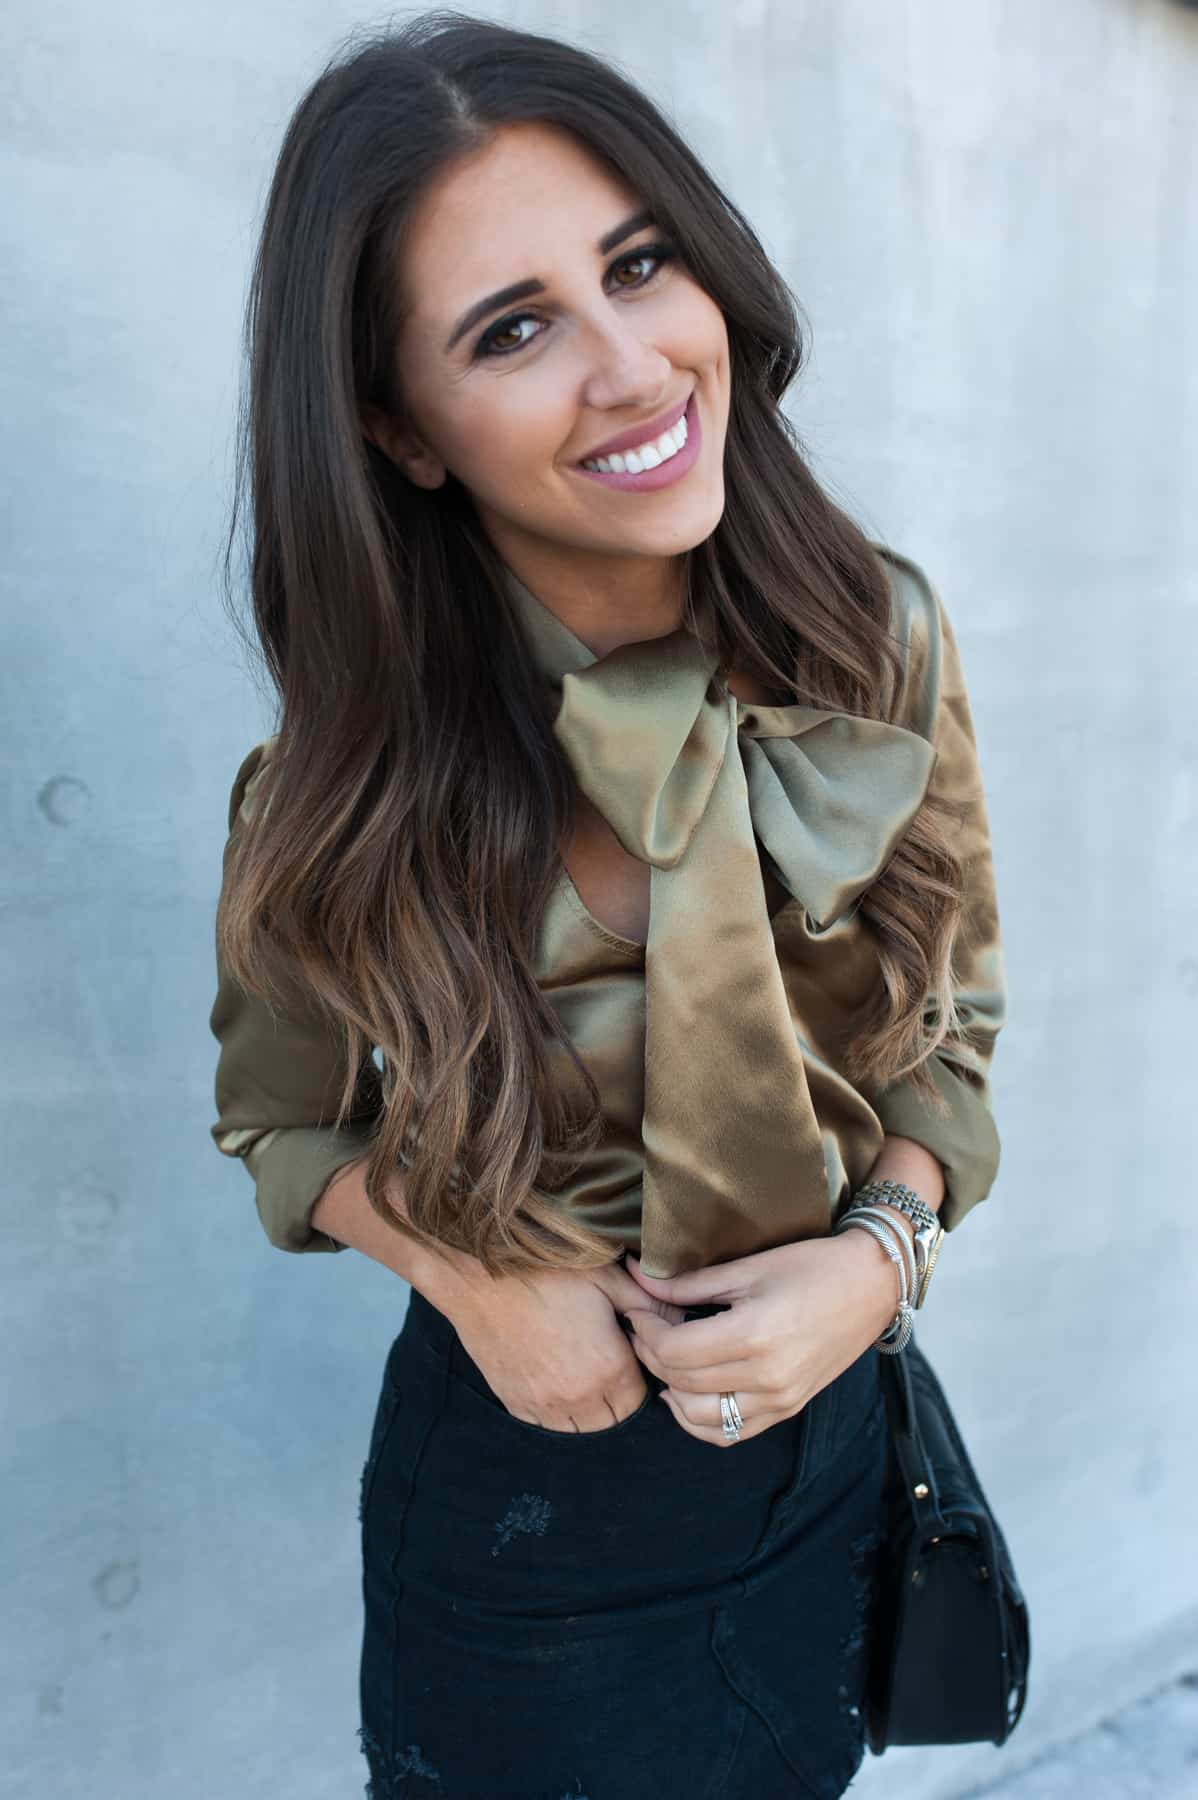 Big Bow Tie | Dress Up Buttercup